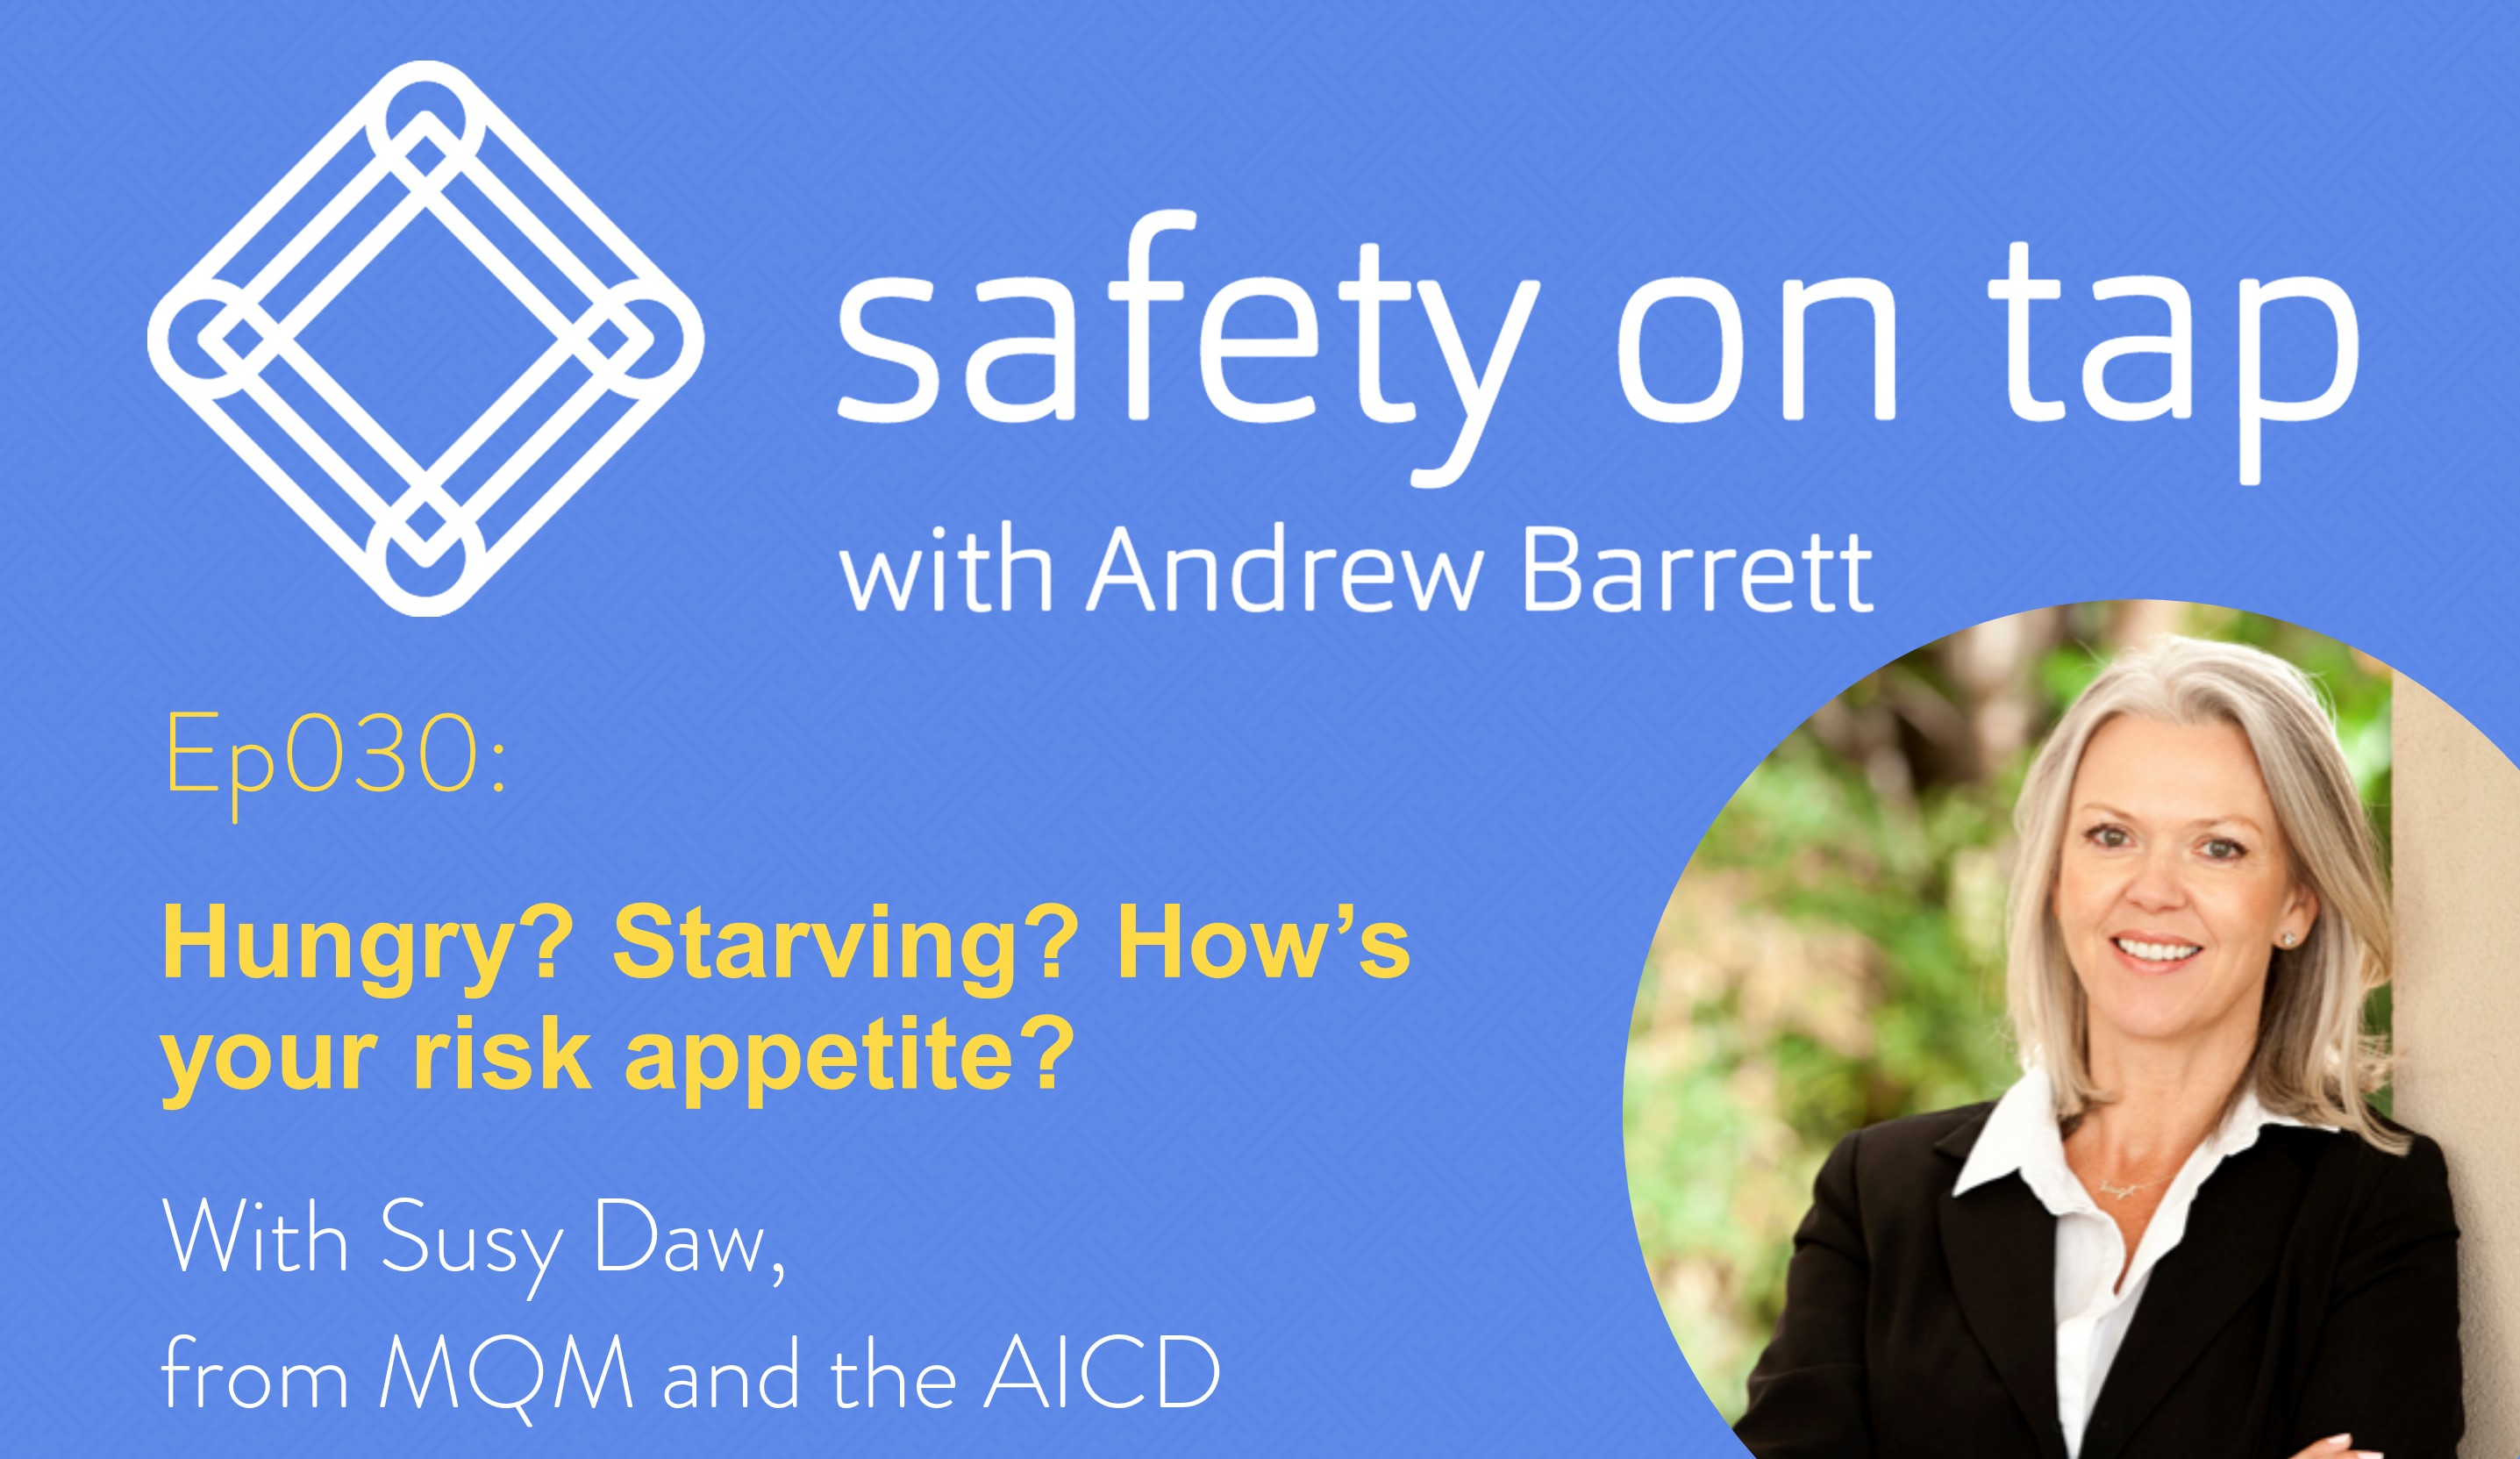 Ep30: Hungry? Starving? How's your risk appetite? with Susy Daw